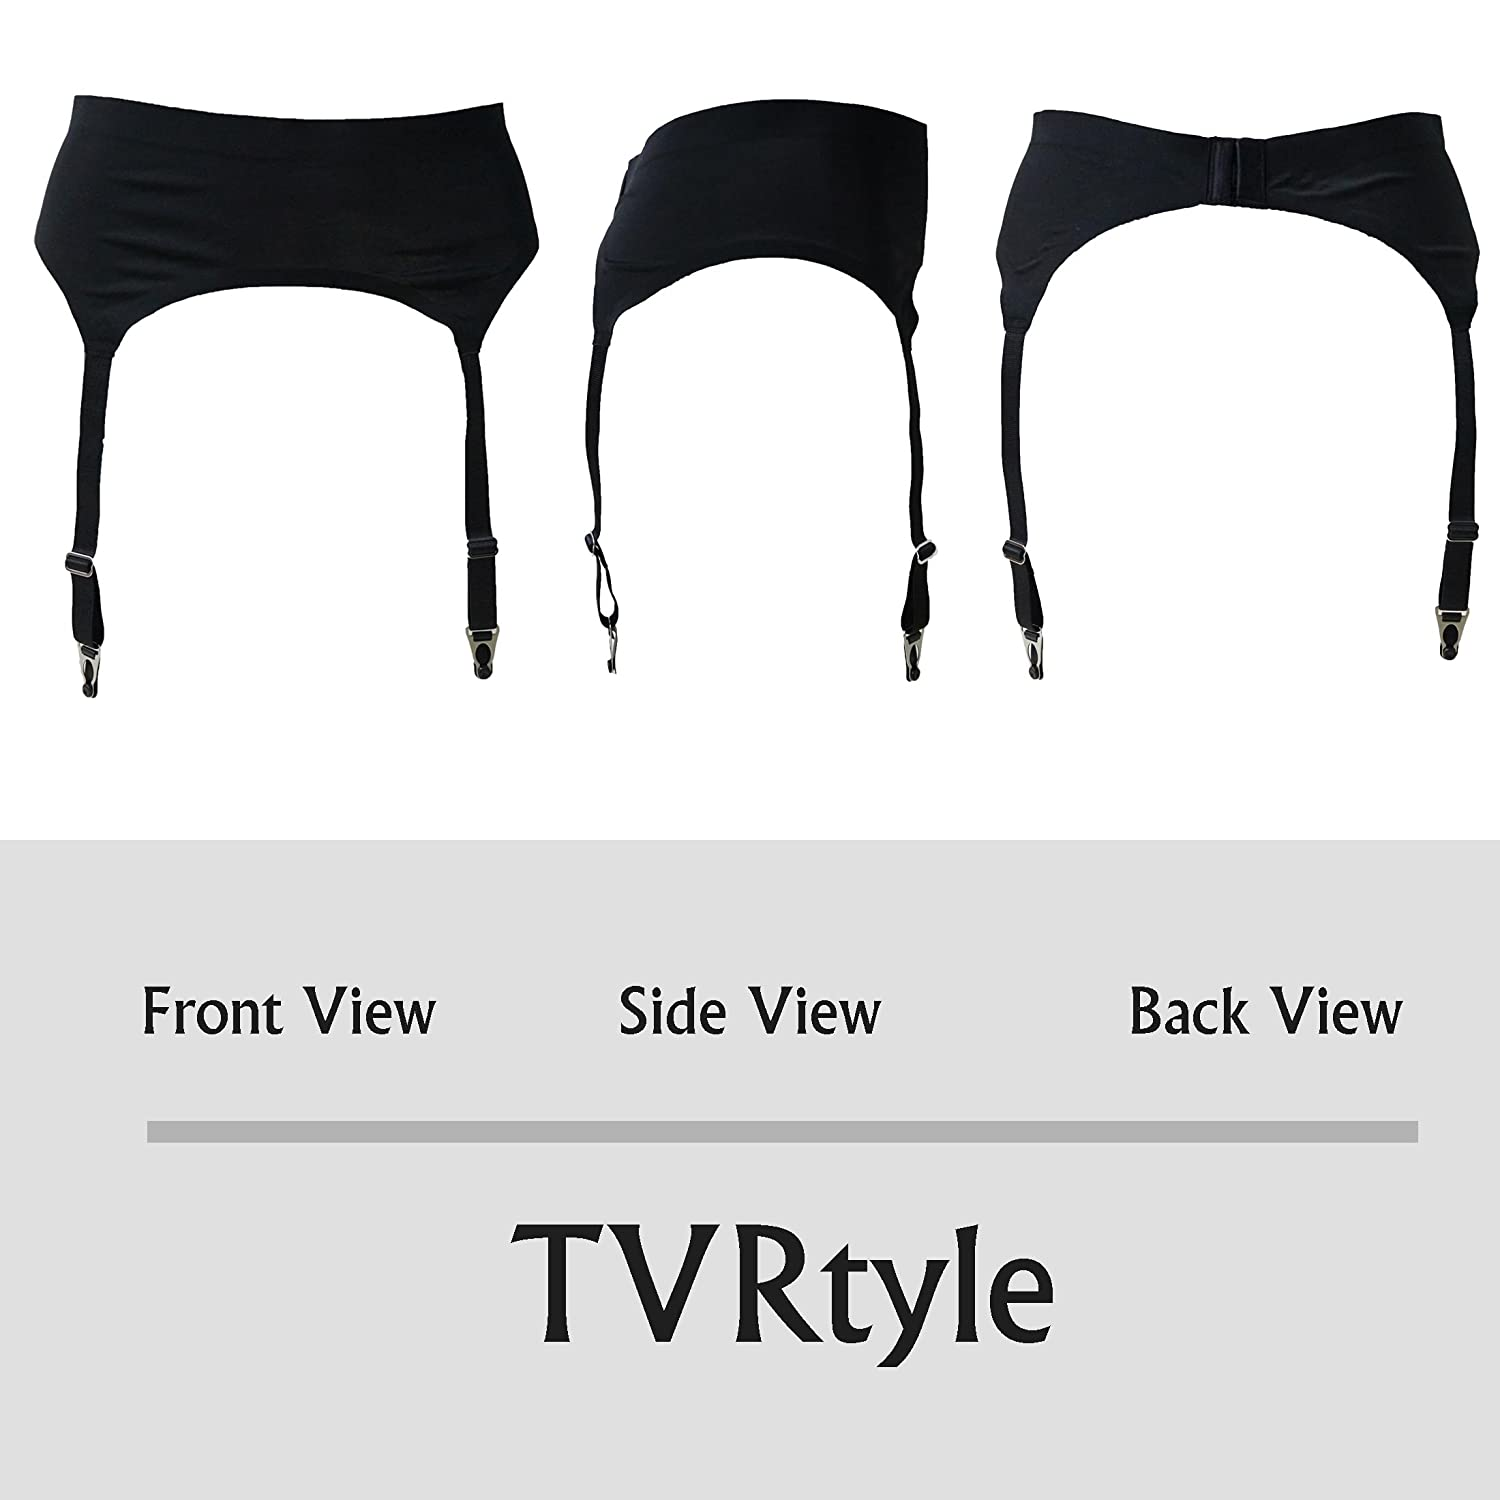 b8be4a43d TVRtyle Women s Black Ultra-Thin 4 Wide Straps Metal Buckles Sexy Garter  Belts for Stockings larger image